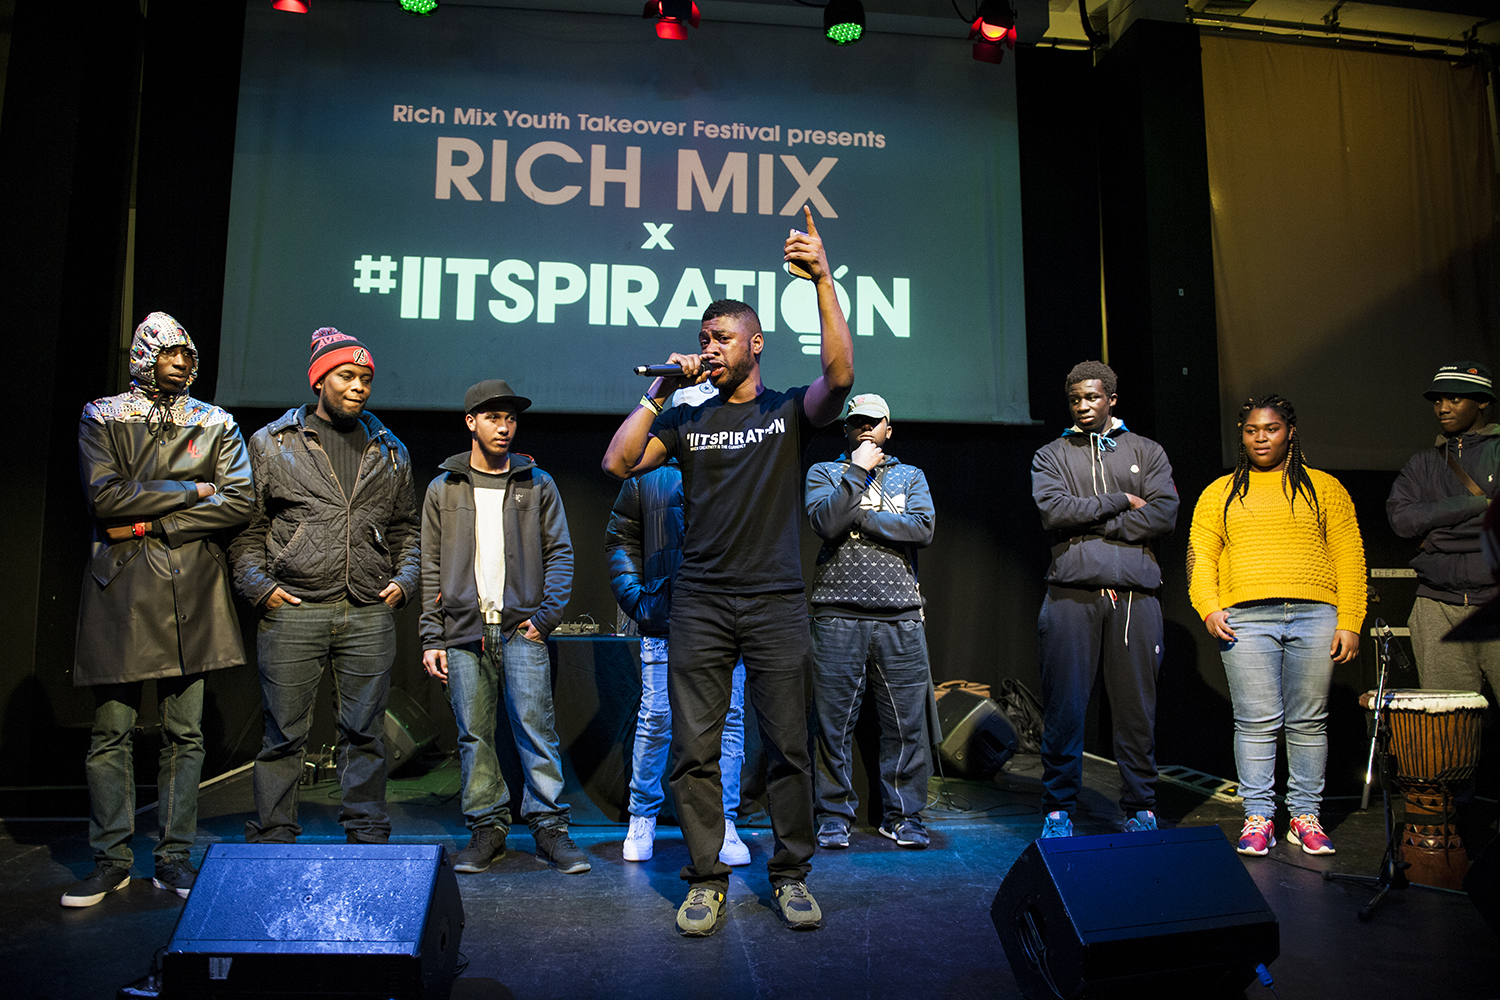 EVENT: #IITSPIRATION CONNECTS @ RICH MIX, 25 JULY